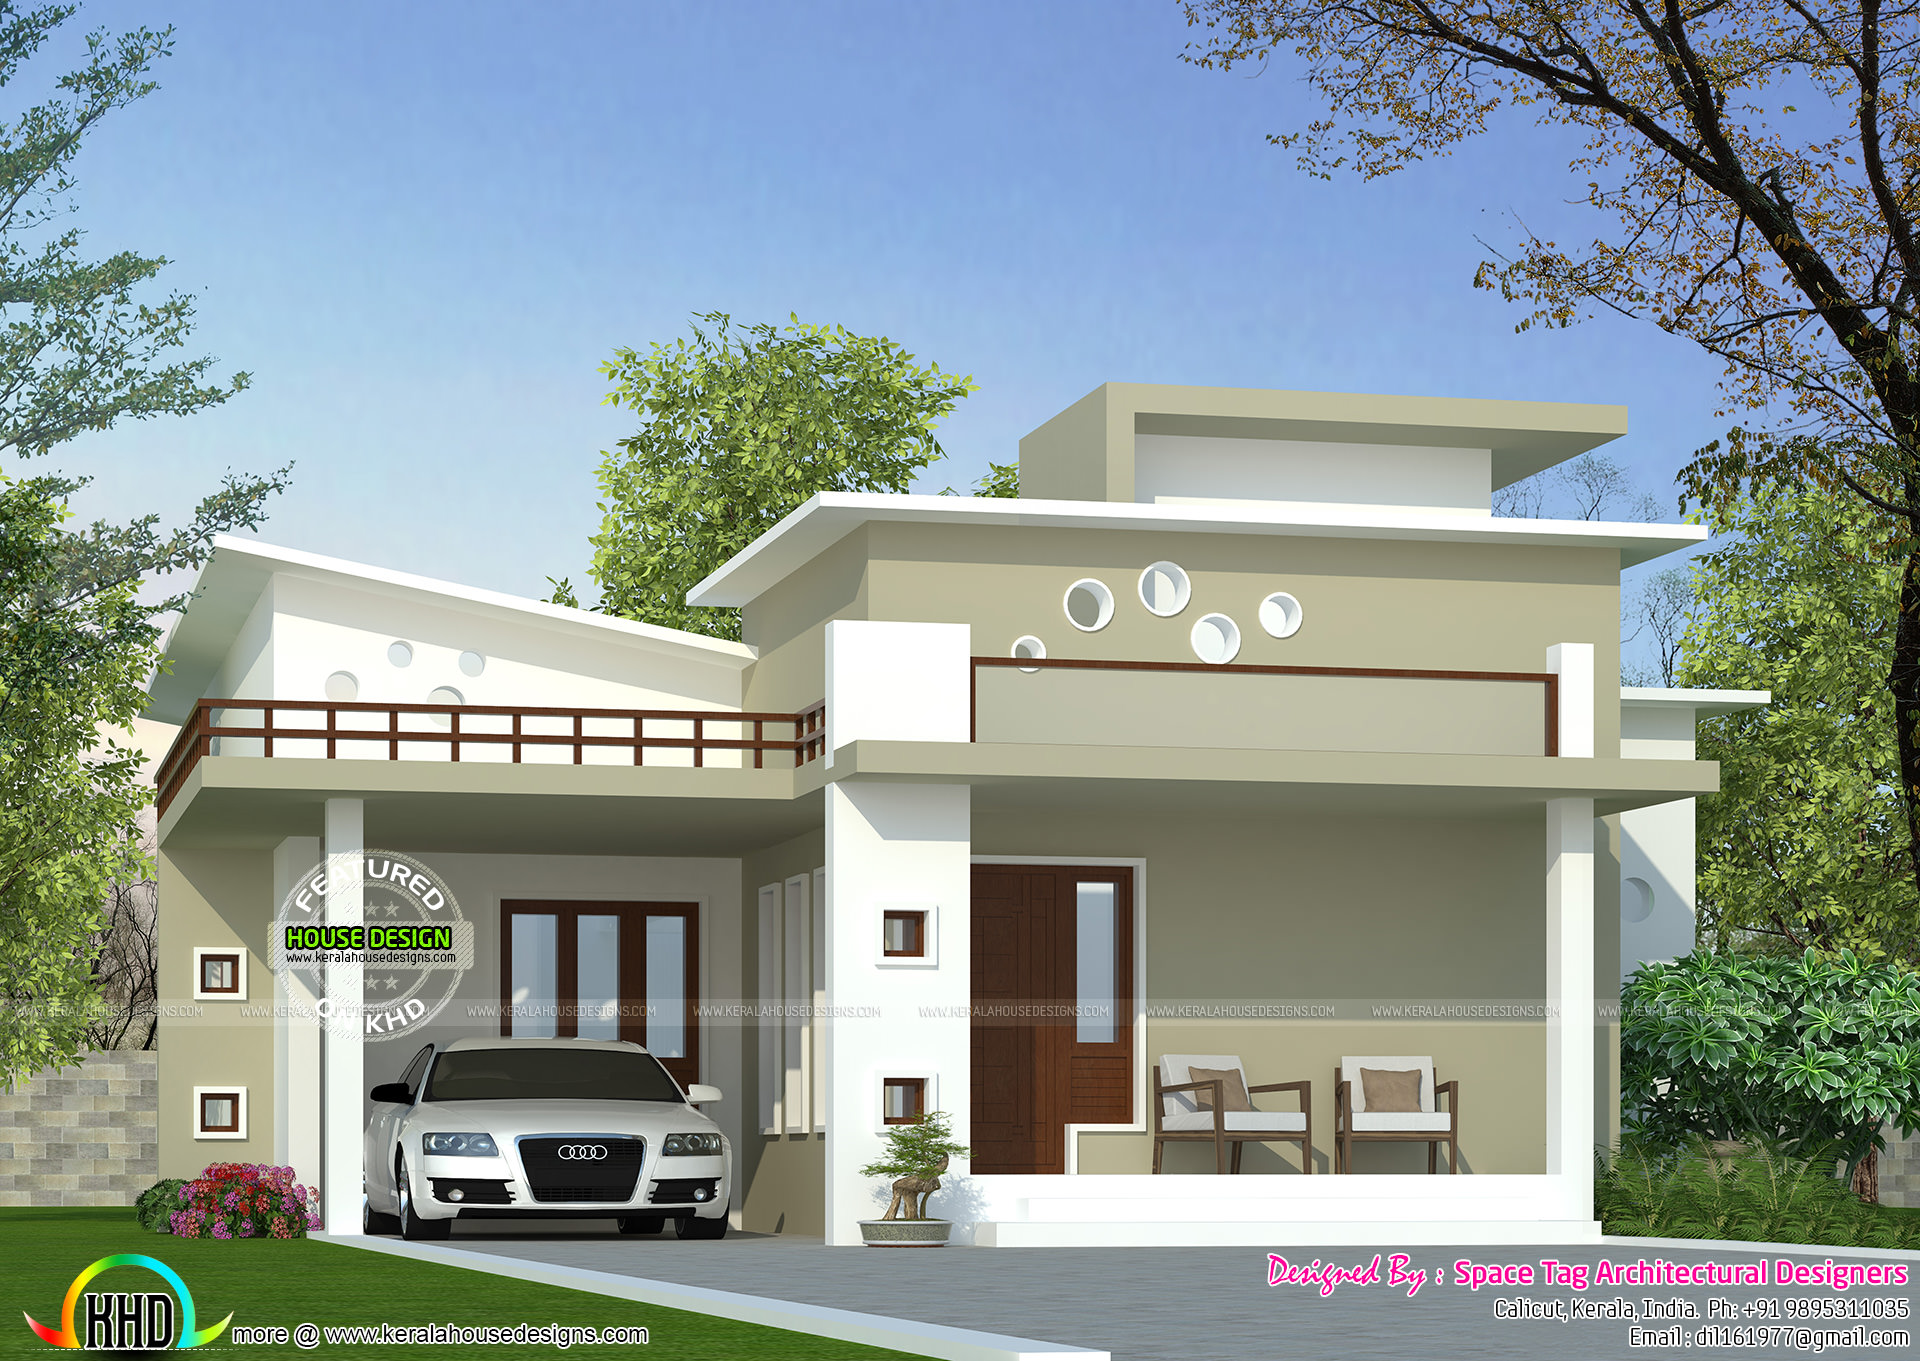 Low cost kerala home design kerala home design and floor for Www homedesign com